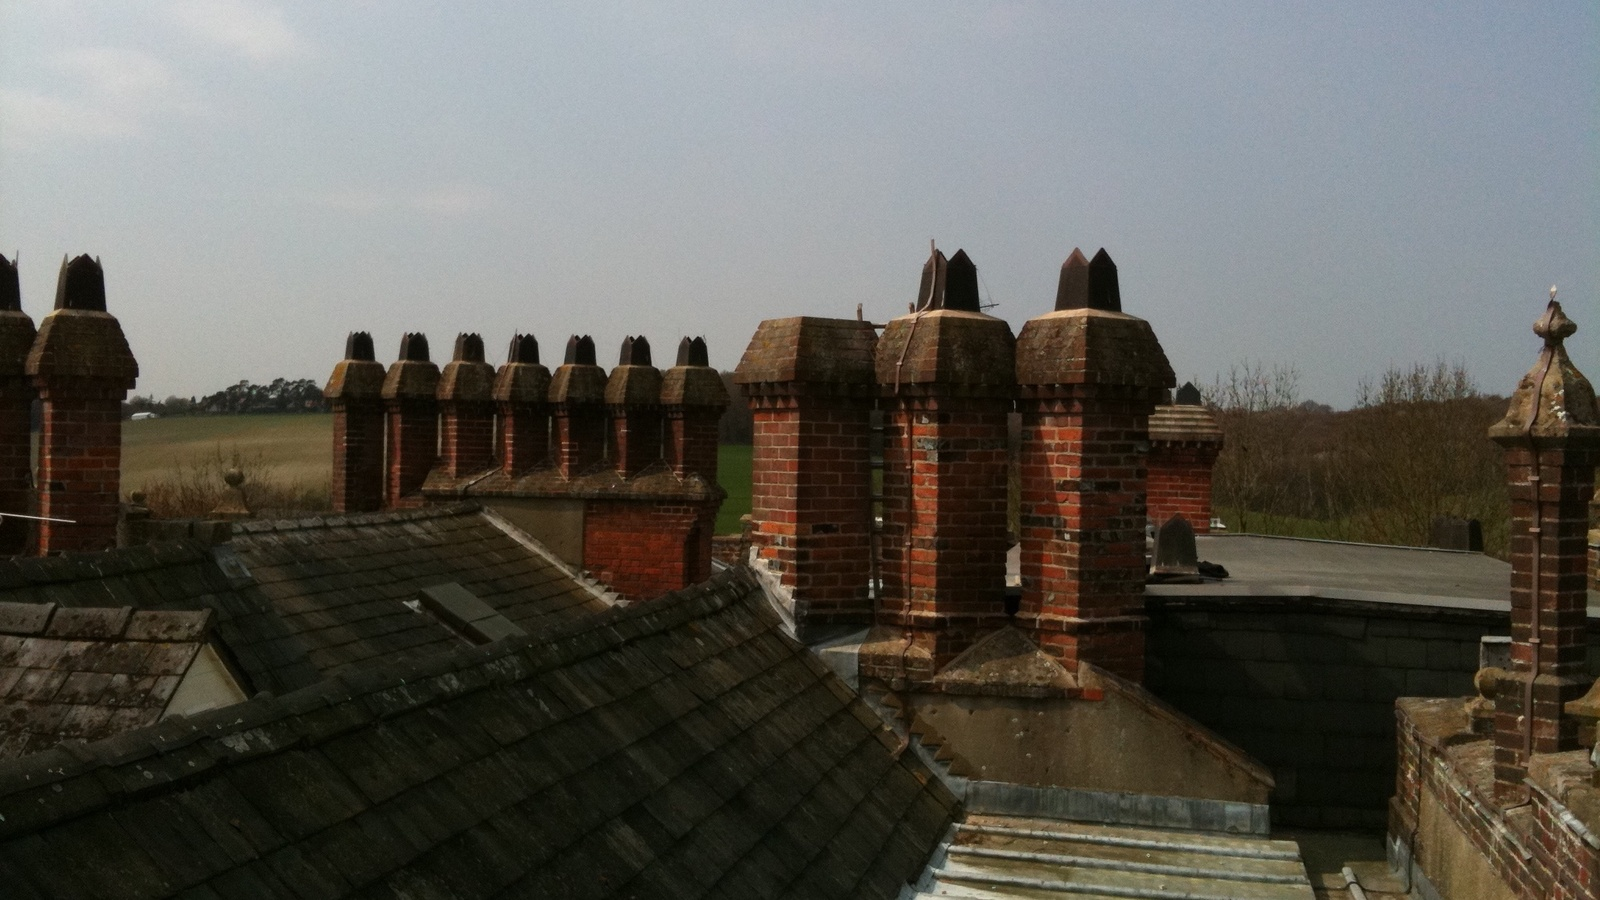 The rooftop of Hughenden Manor, High Wycombe.